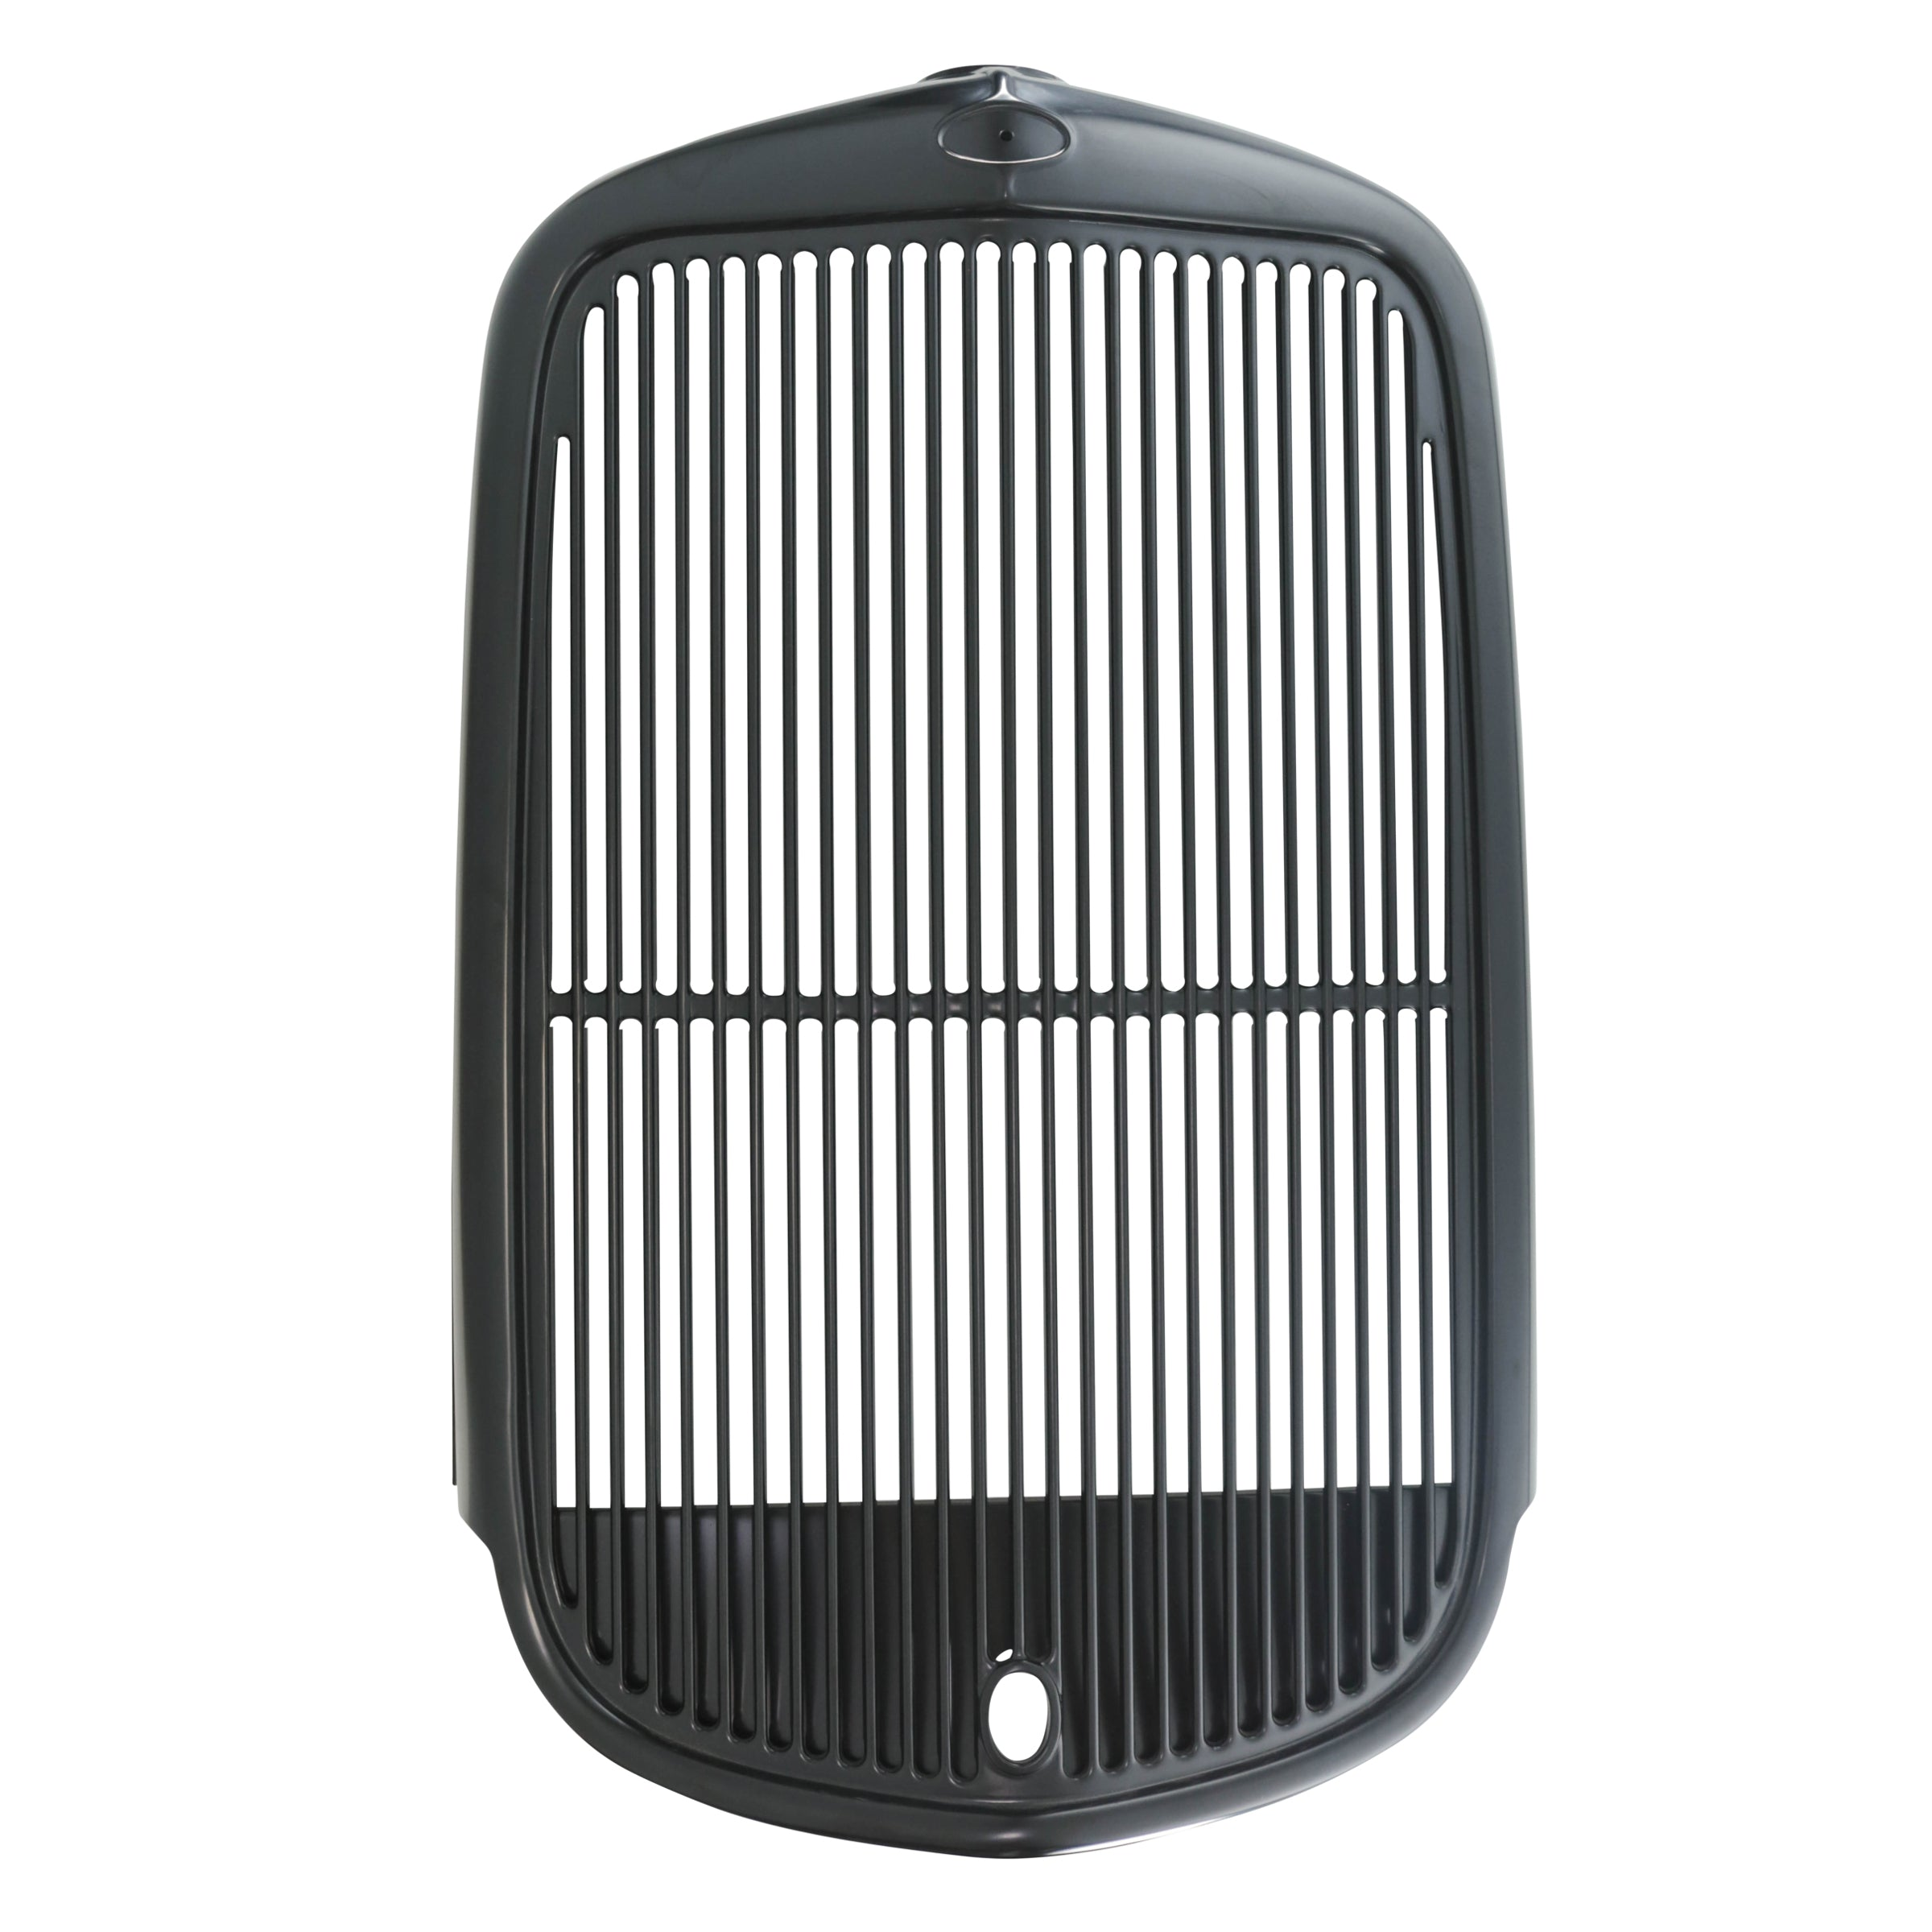 Steel Radiator Grille Shell (Plain Steel) • 1932 Pickup & Commercial